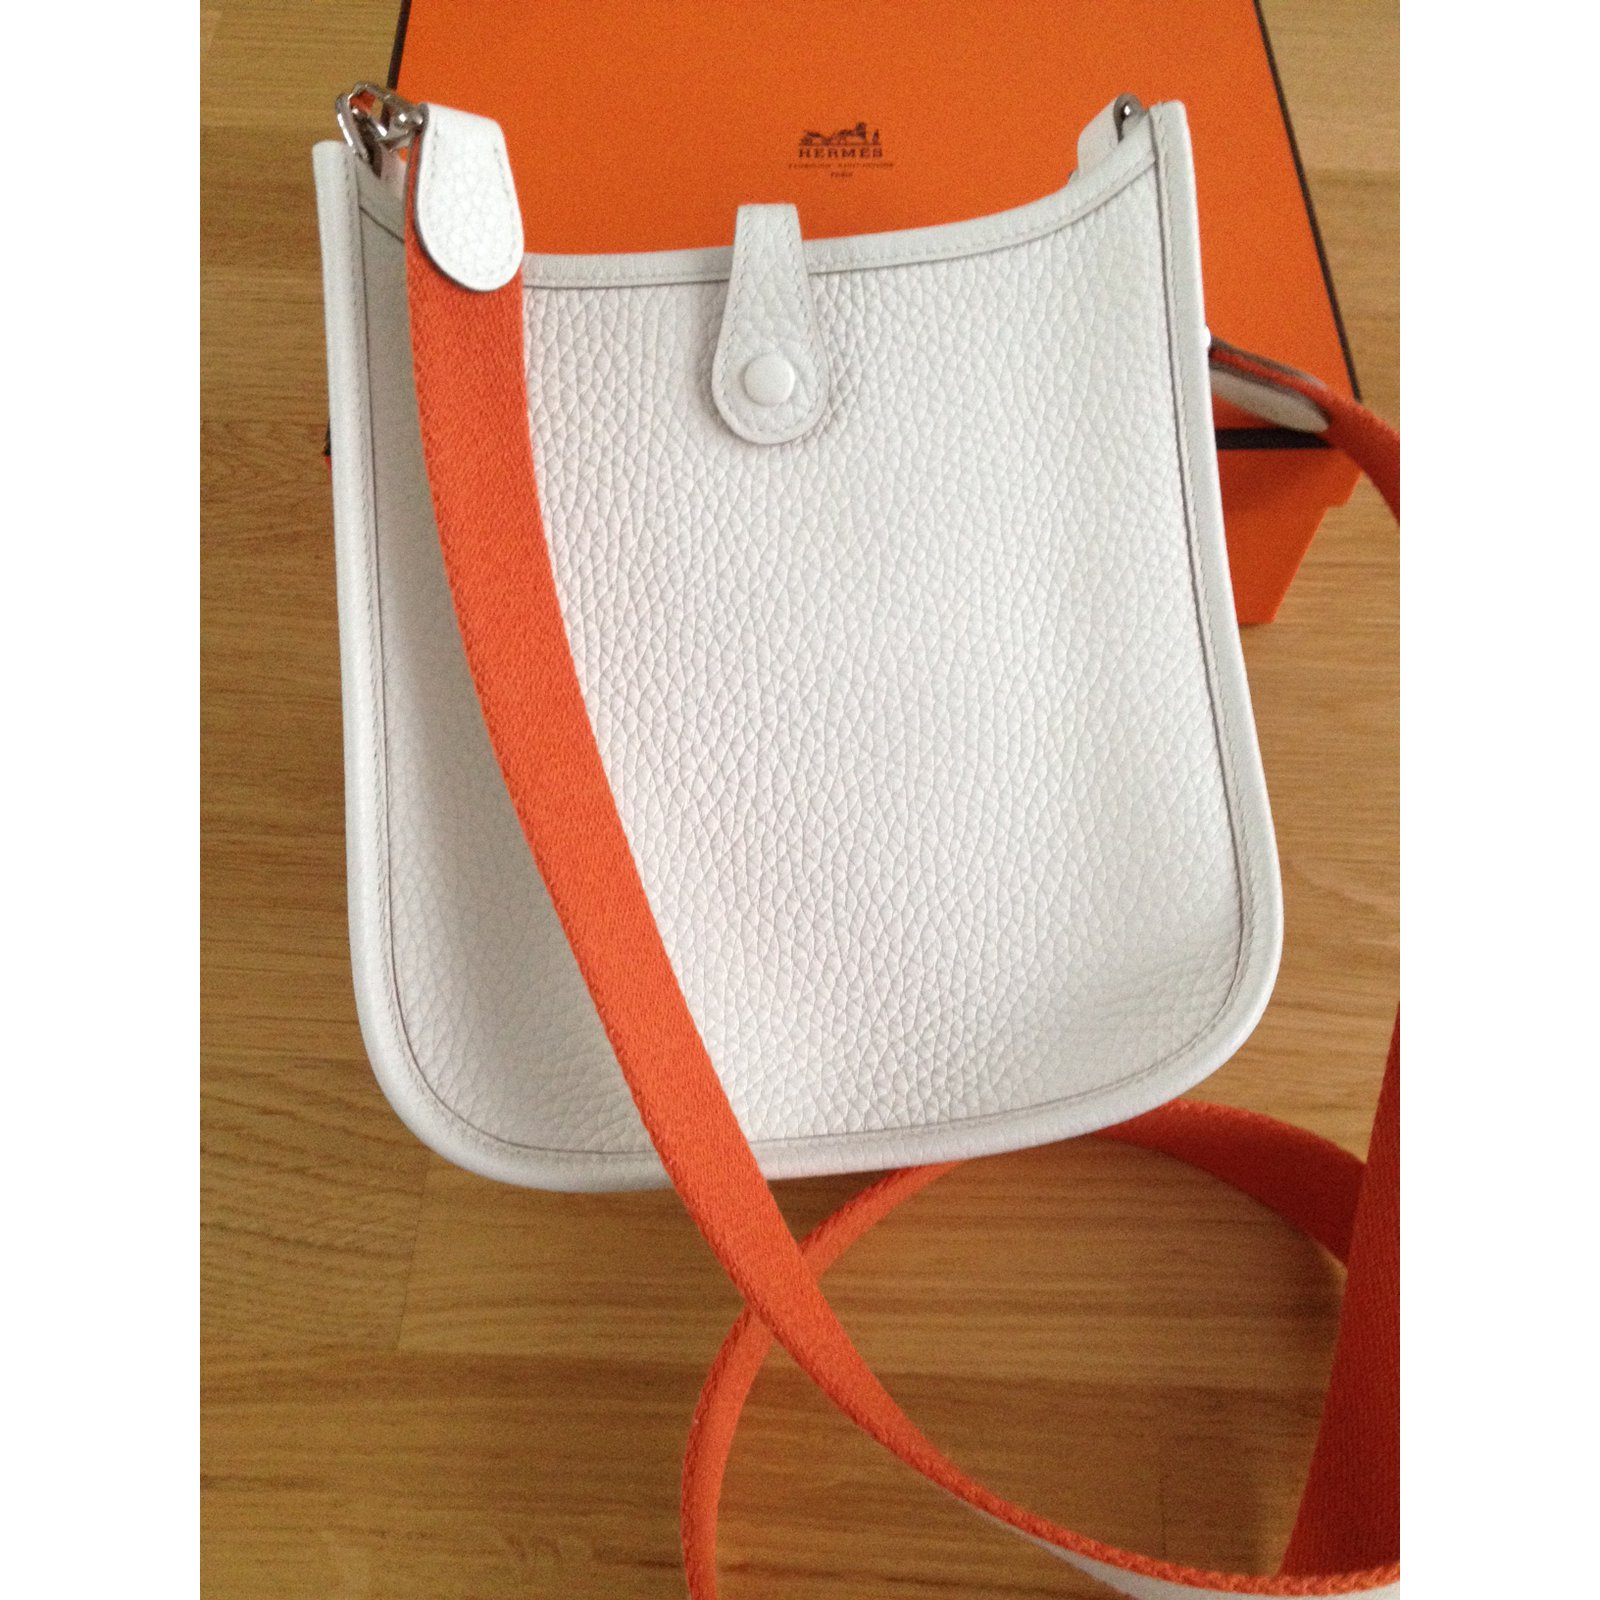 9a8e795a12a0 uk hermes orange evelyne iii pm bag 6242e a9425  new zealand sacs à main hermès  evelyne cuir blanc ref.57259 joli closet d5729 d30ec